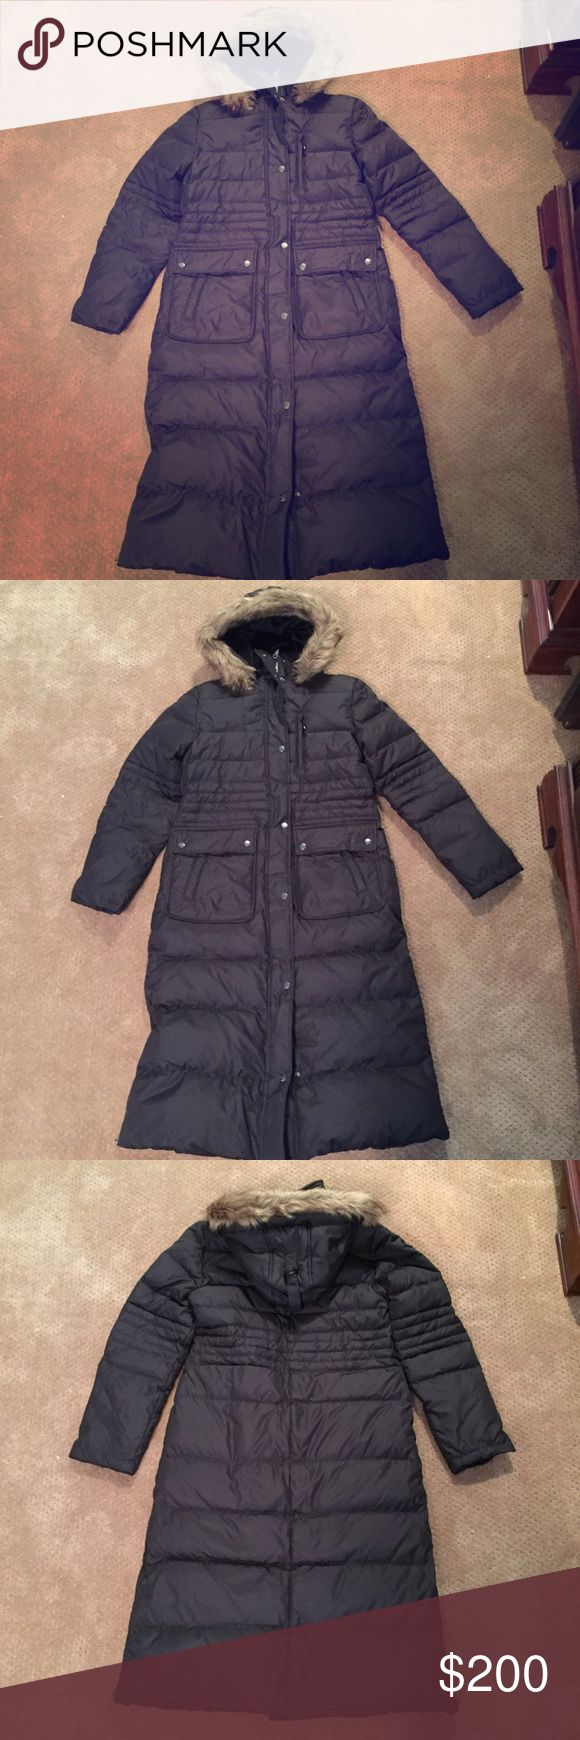 NWOT DKNY Long Puffer Coat with Faux Fur Hood NWOT DKNY long puffer coat with Faux fur hood. Size medium. Dual zipper with snaps. Zippers on the bottom on each side of coat. Front has two large snap pockets and one of the snap pockets has an open pocket on top. Zipper pocket on left breast. Two zipper pockets inside coat. Top half of coat and inside of hood lined with Faux fur. Tags removed but never worn. From a smoke-free home. DKNY Jackets & Coats Puffers